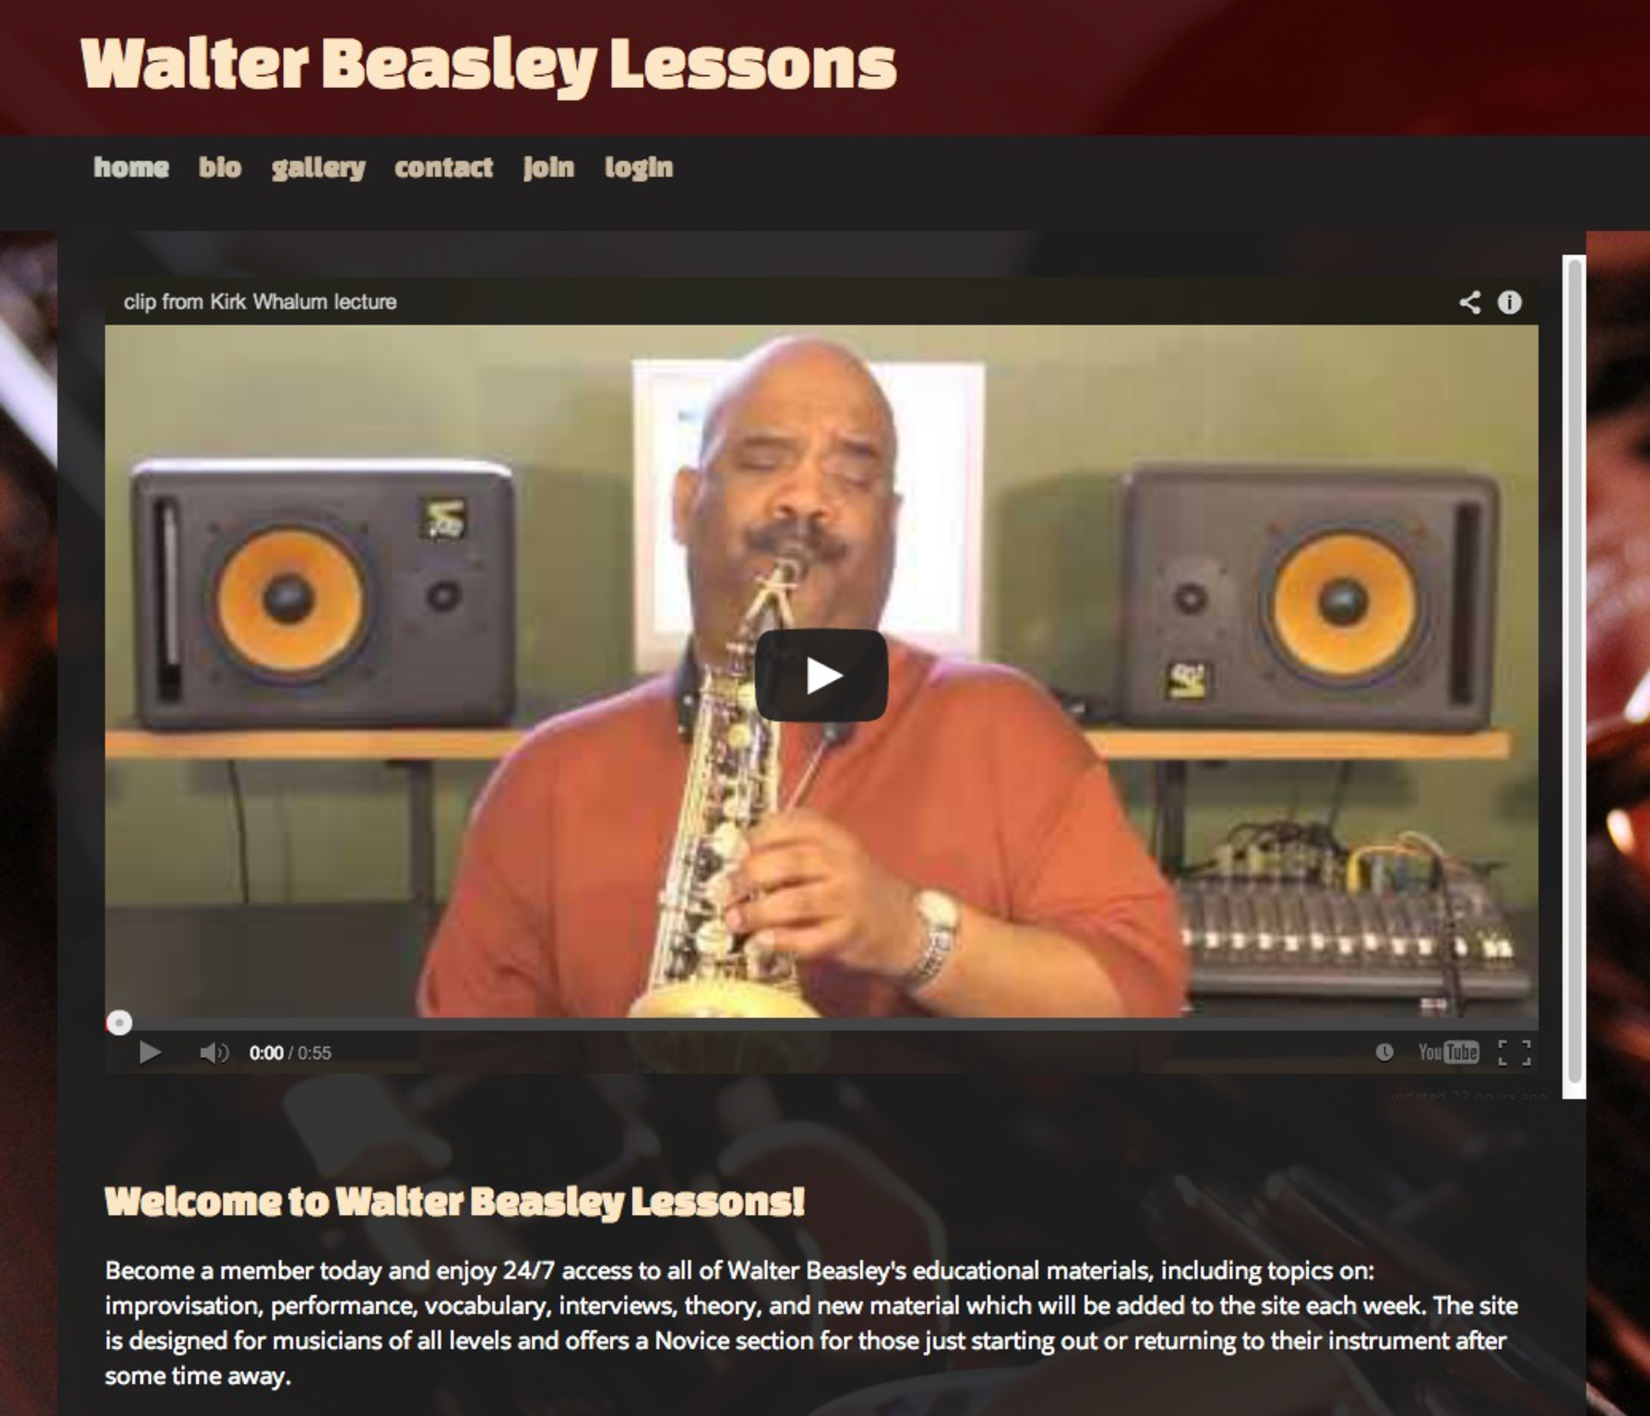 Walter Beasley Lessons